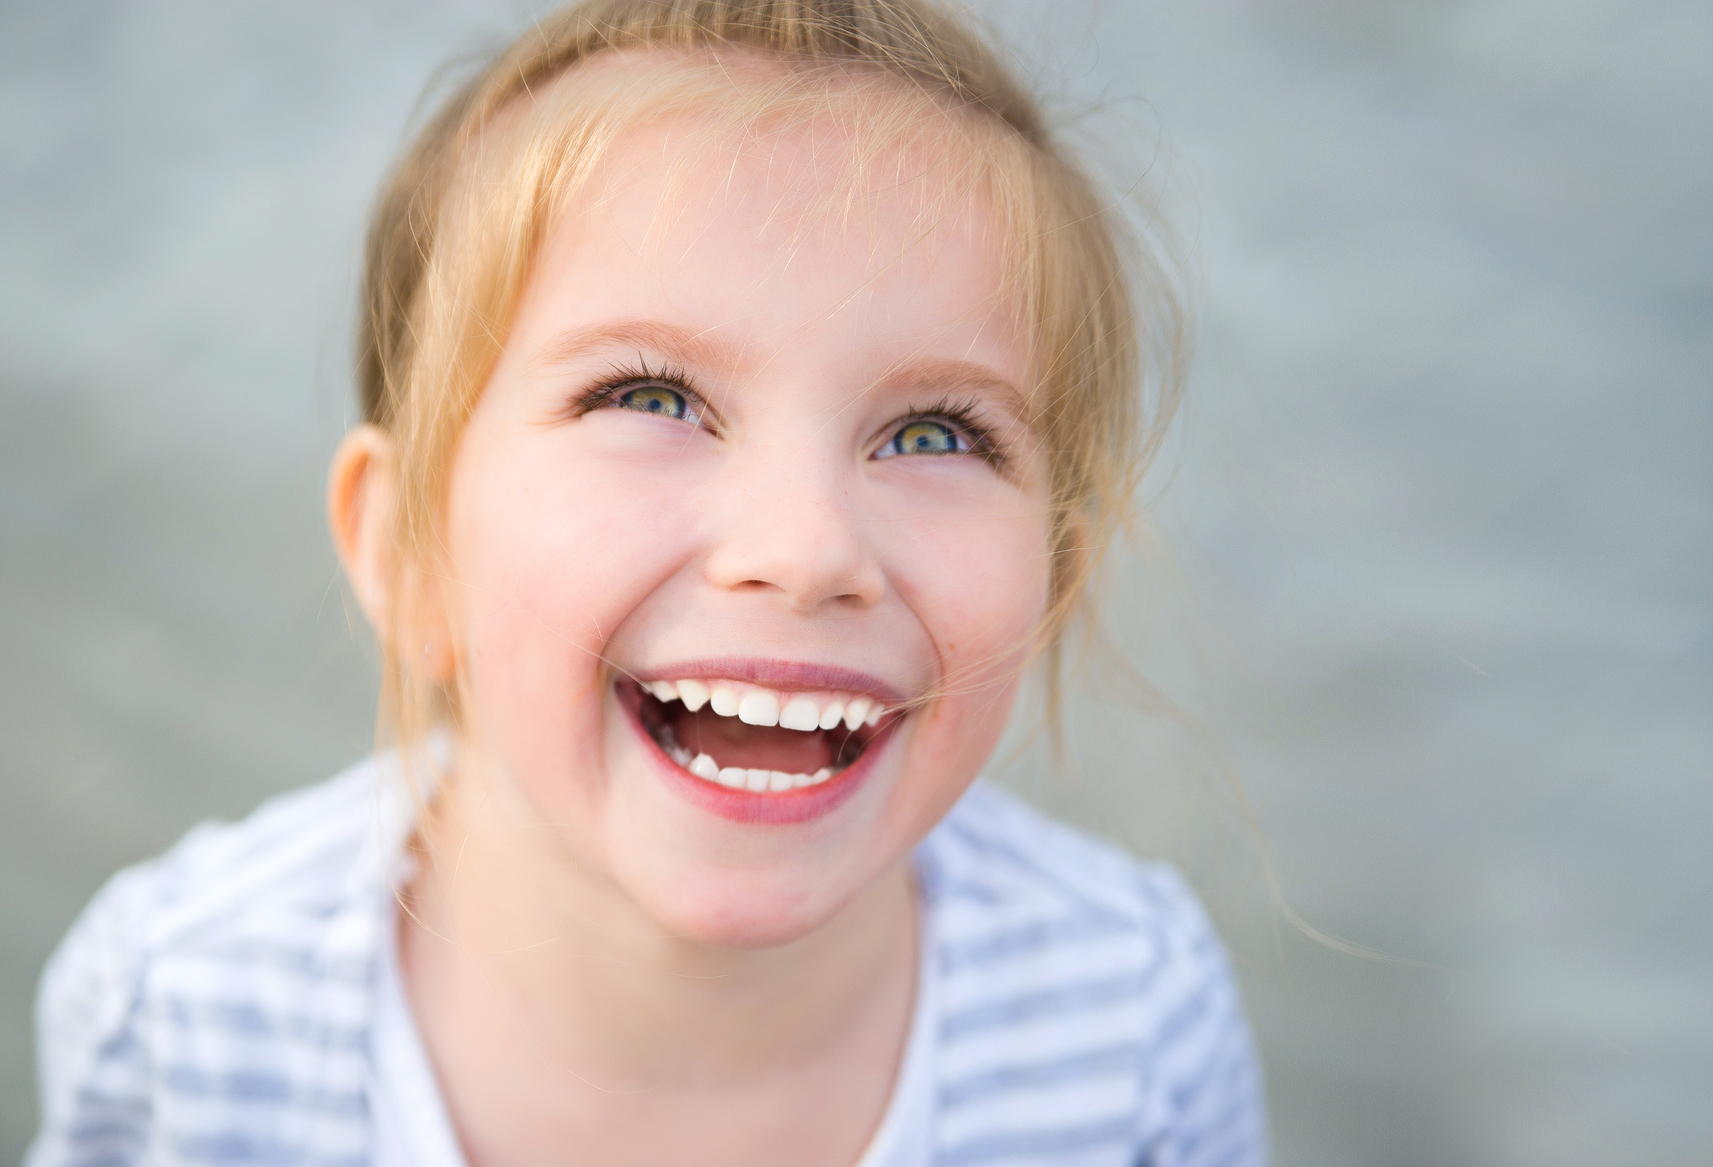 happiness and excitement in the eyes and smiles of children in the photo How to read body language a smile that makes one's eyes crinkle at the one study showed that happiness and excitement.